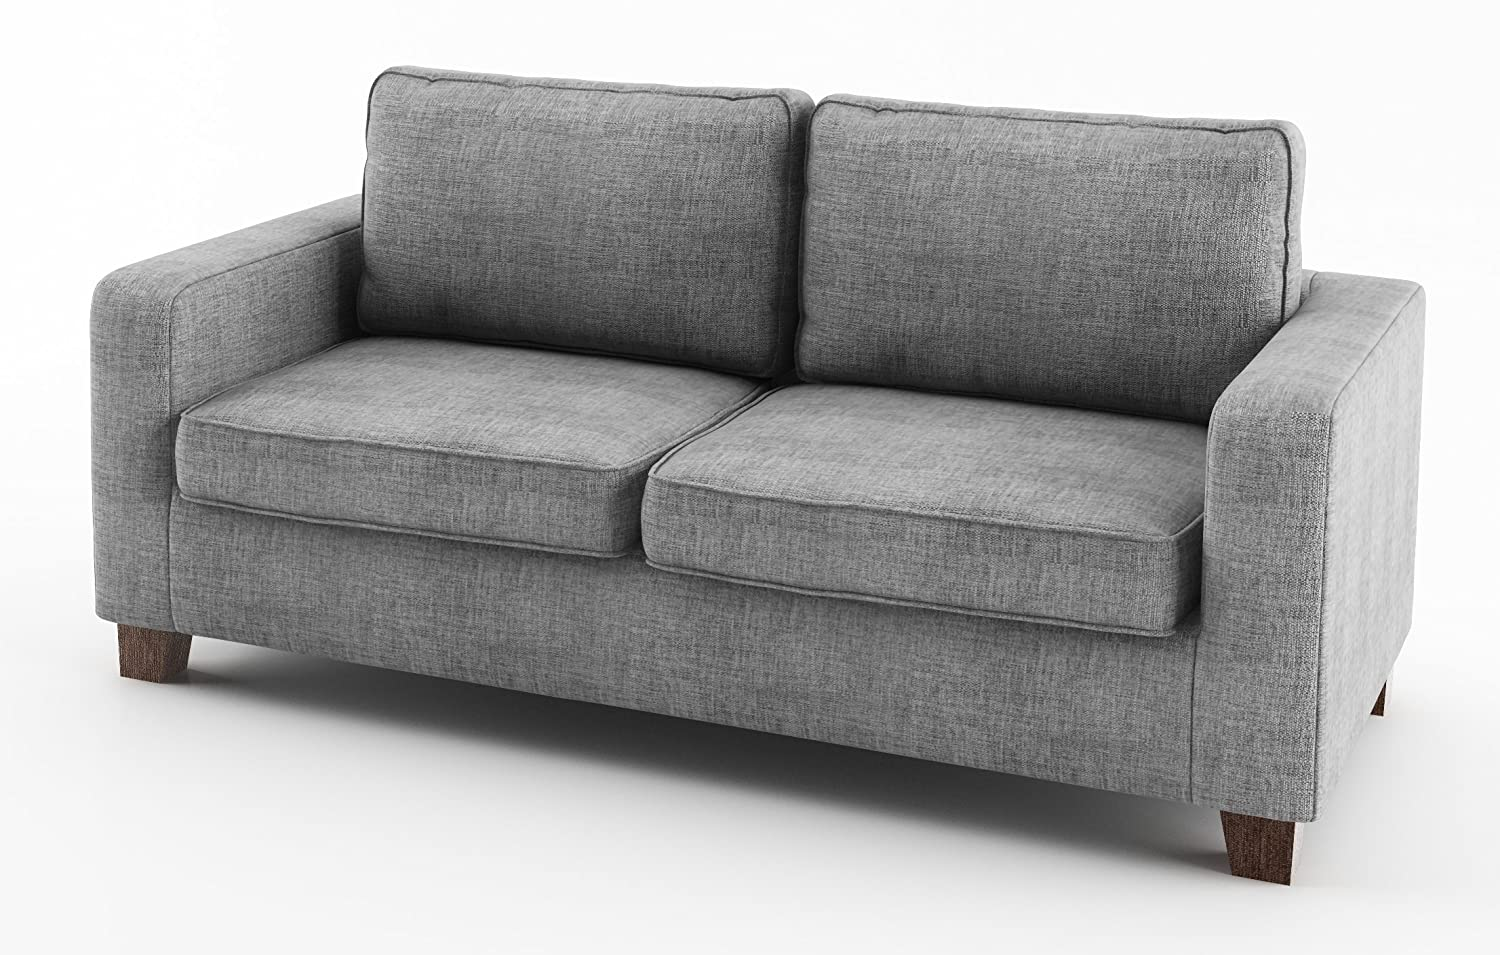 c0f188d2dcd4ad Sofabella Pippa 3-Seater Sofa with Fabric, 182 x 82 x 83 cm, Grey:  Amazon.co.uk: Kitchen & Home